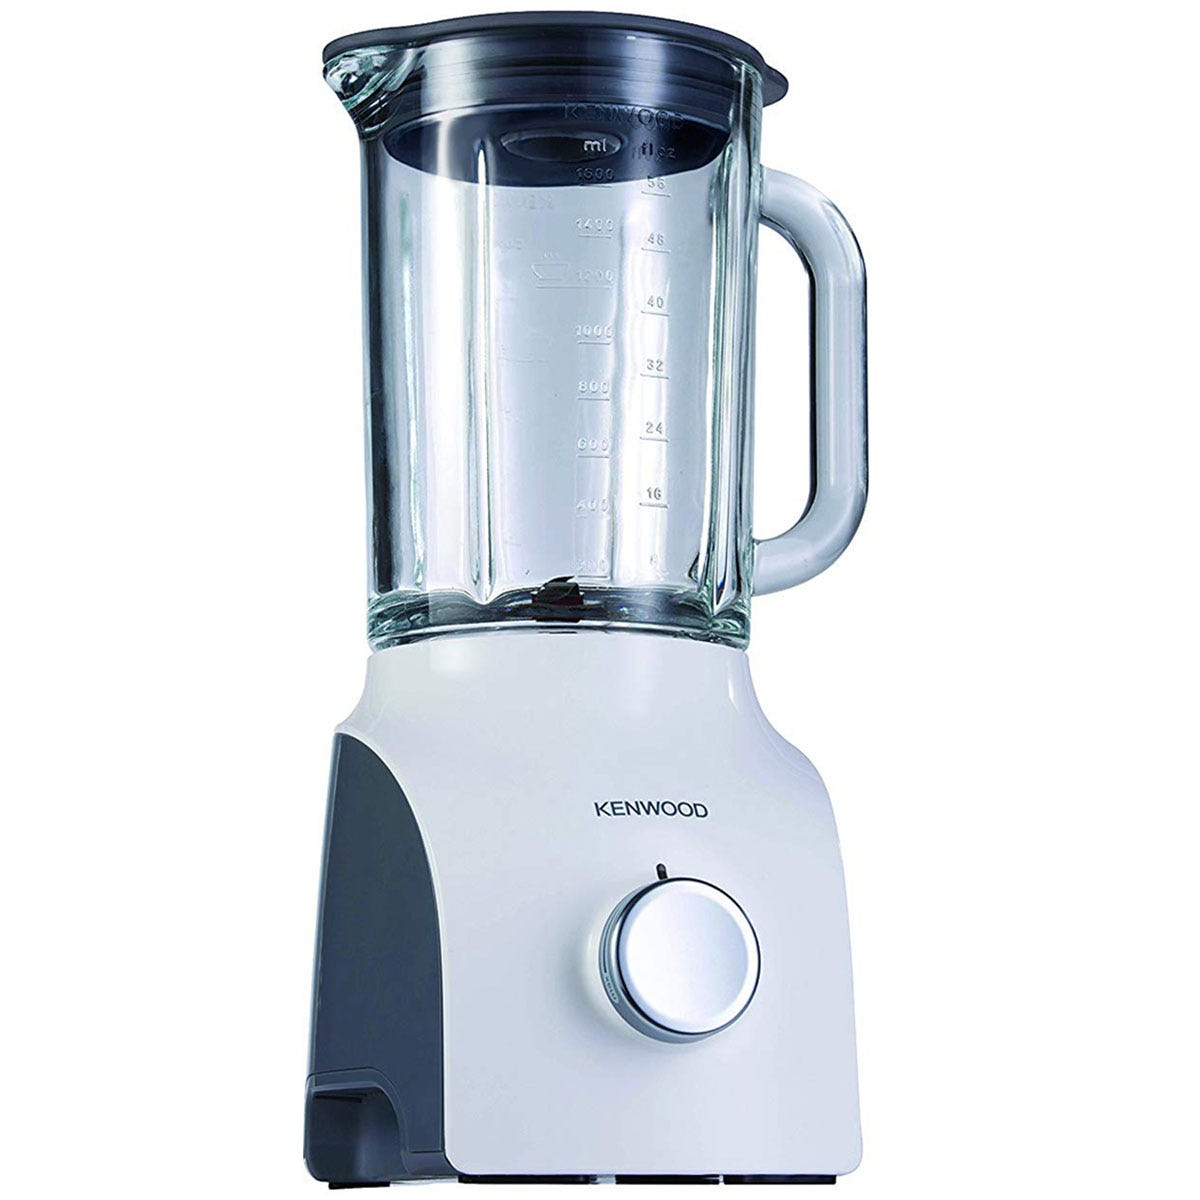 Kenwood BLP600 Thermo-Resistant 800W Blender with Variable Speed Settings - White